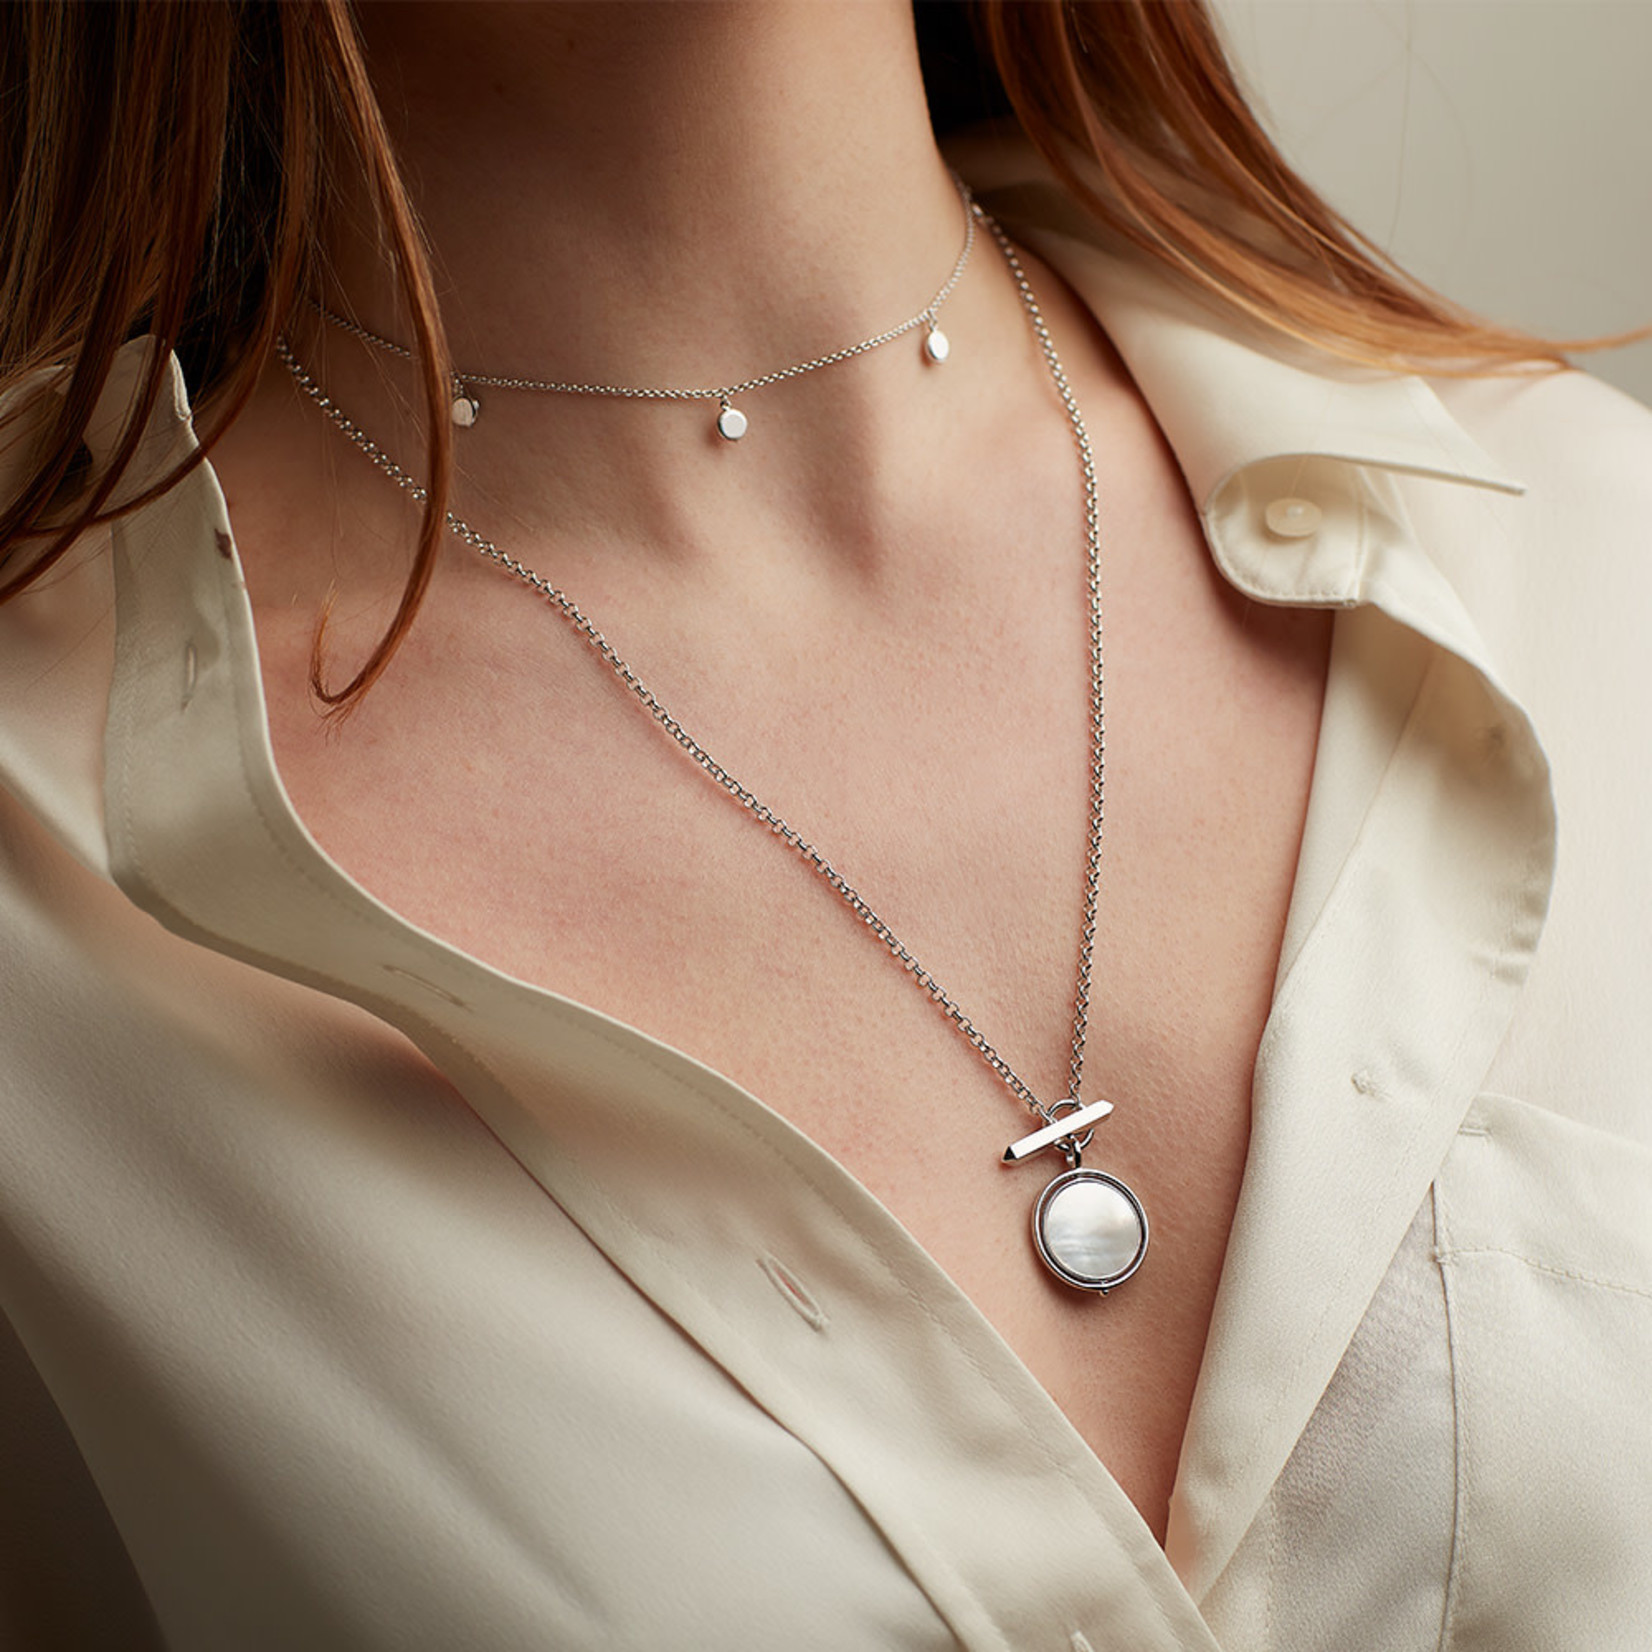 Revival Eclipse Equinox Mother of Pearl T-Bar Style Spinner Necklace